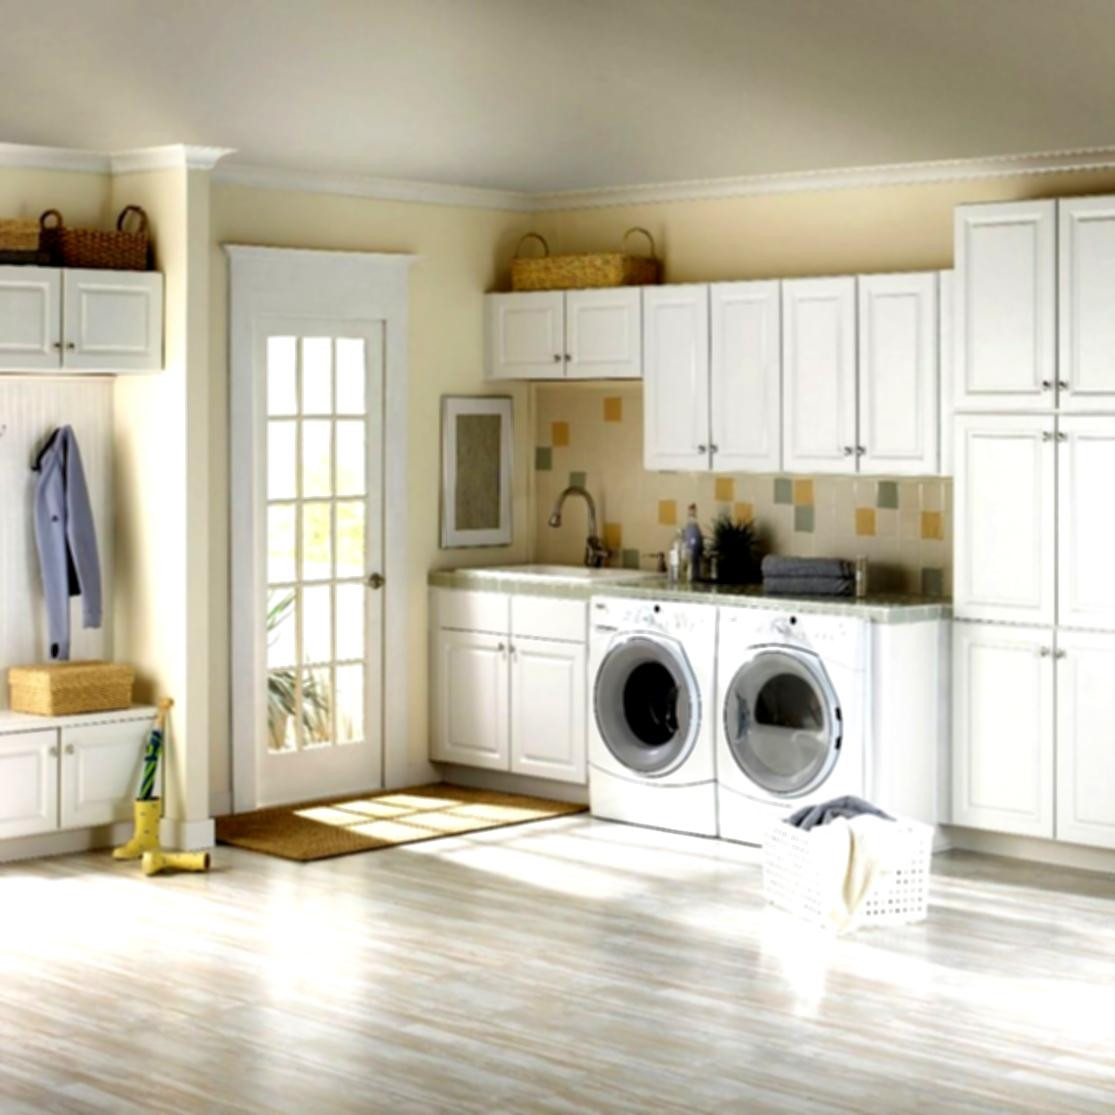 Best ideas about Lowes Laundry Room Cabinets . Save or Pin Best Stainless Steel Utility Sink Ideas Laundry Room Lowes Now.